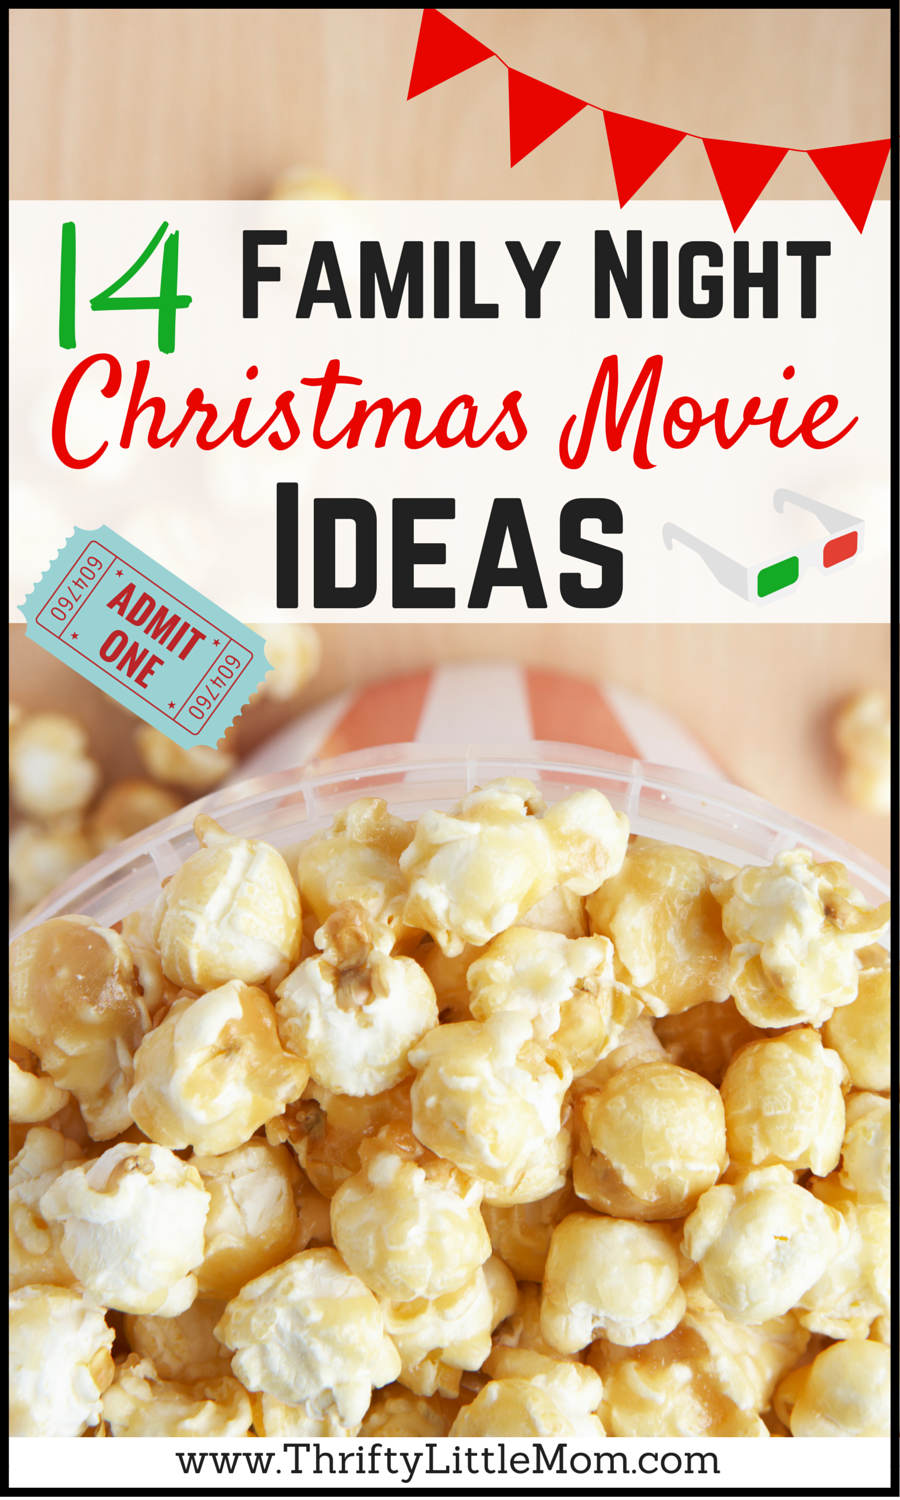 14 Family Night Christmas Movie Ideas